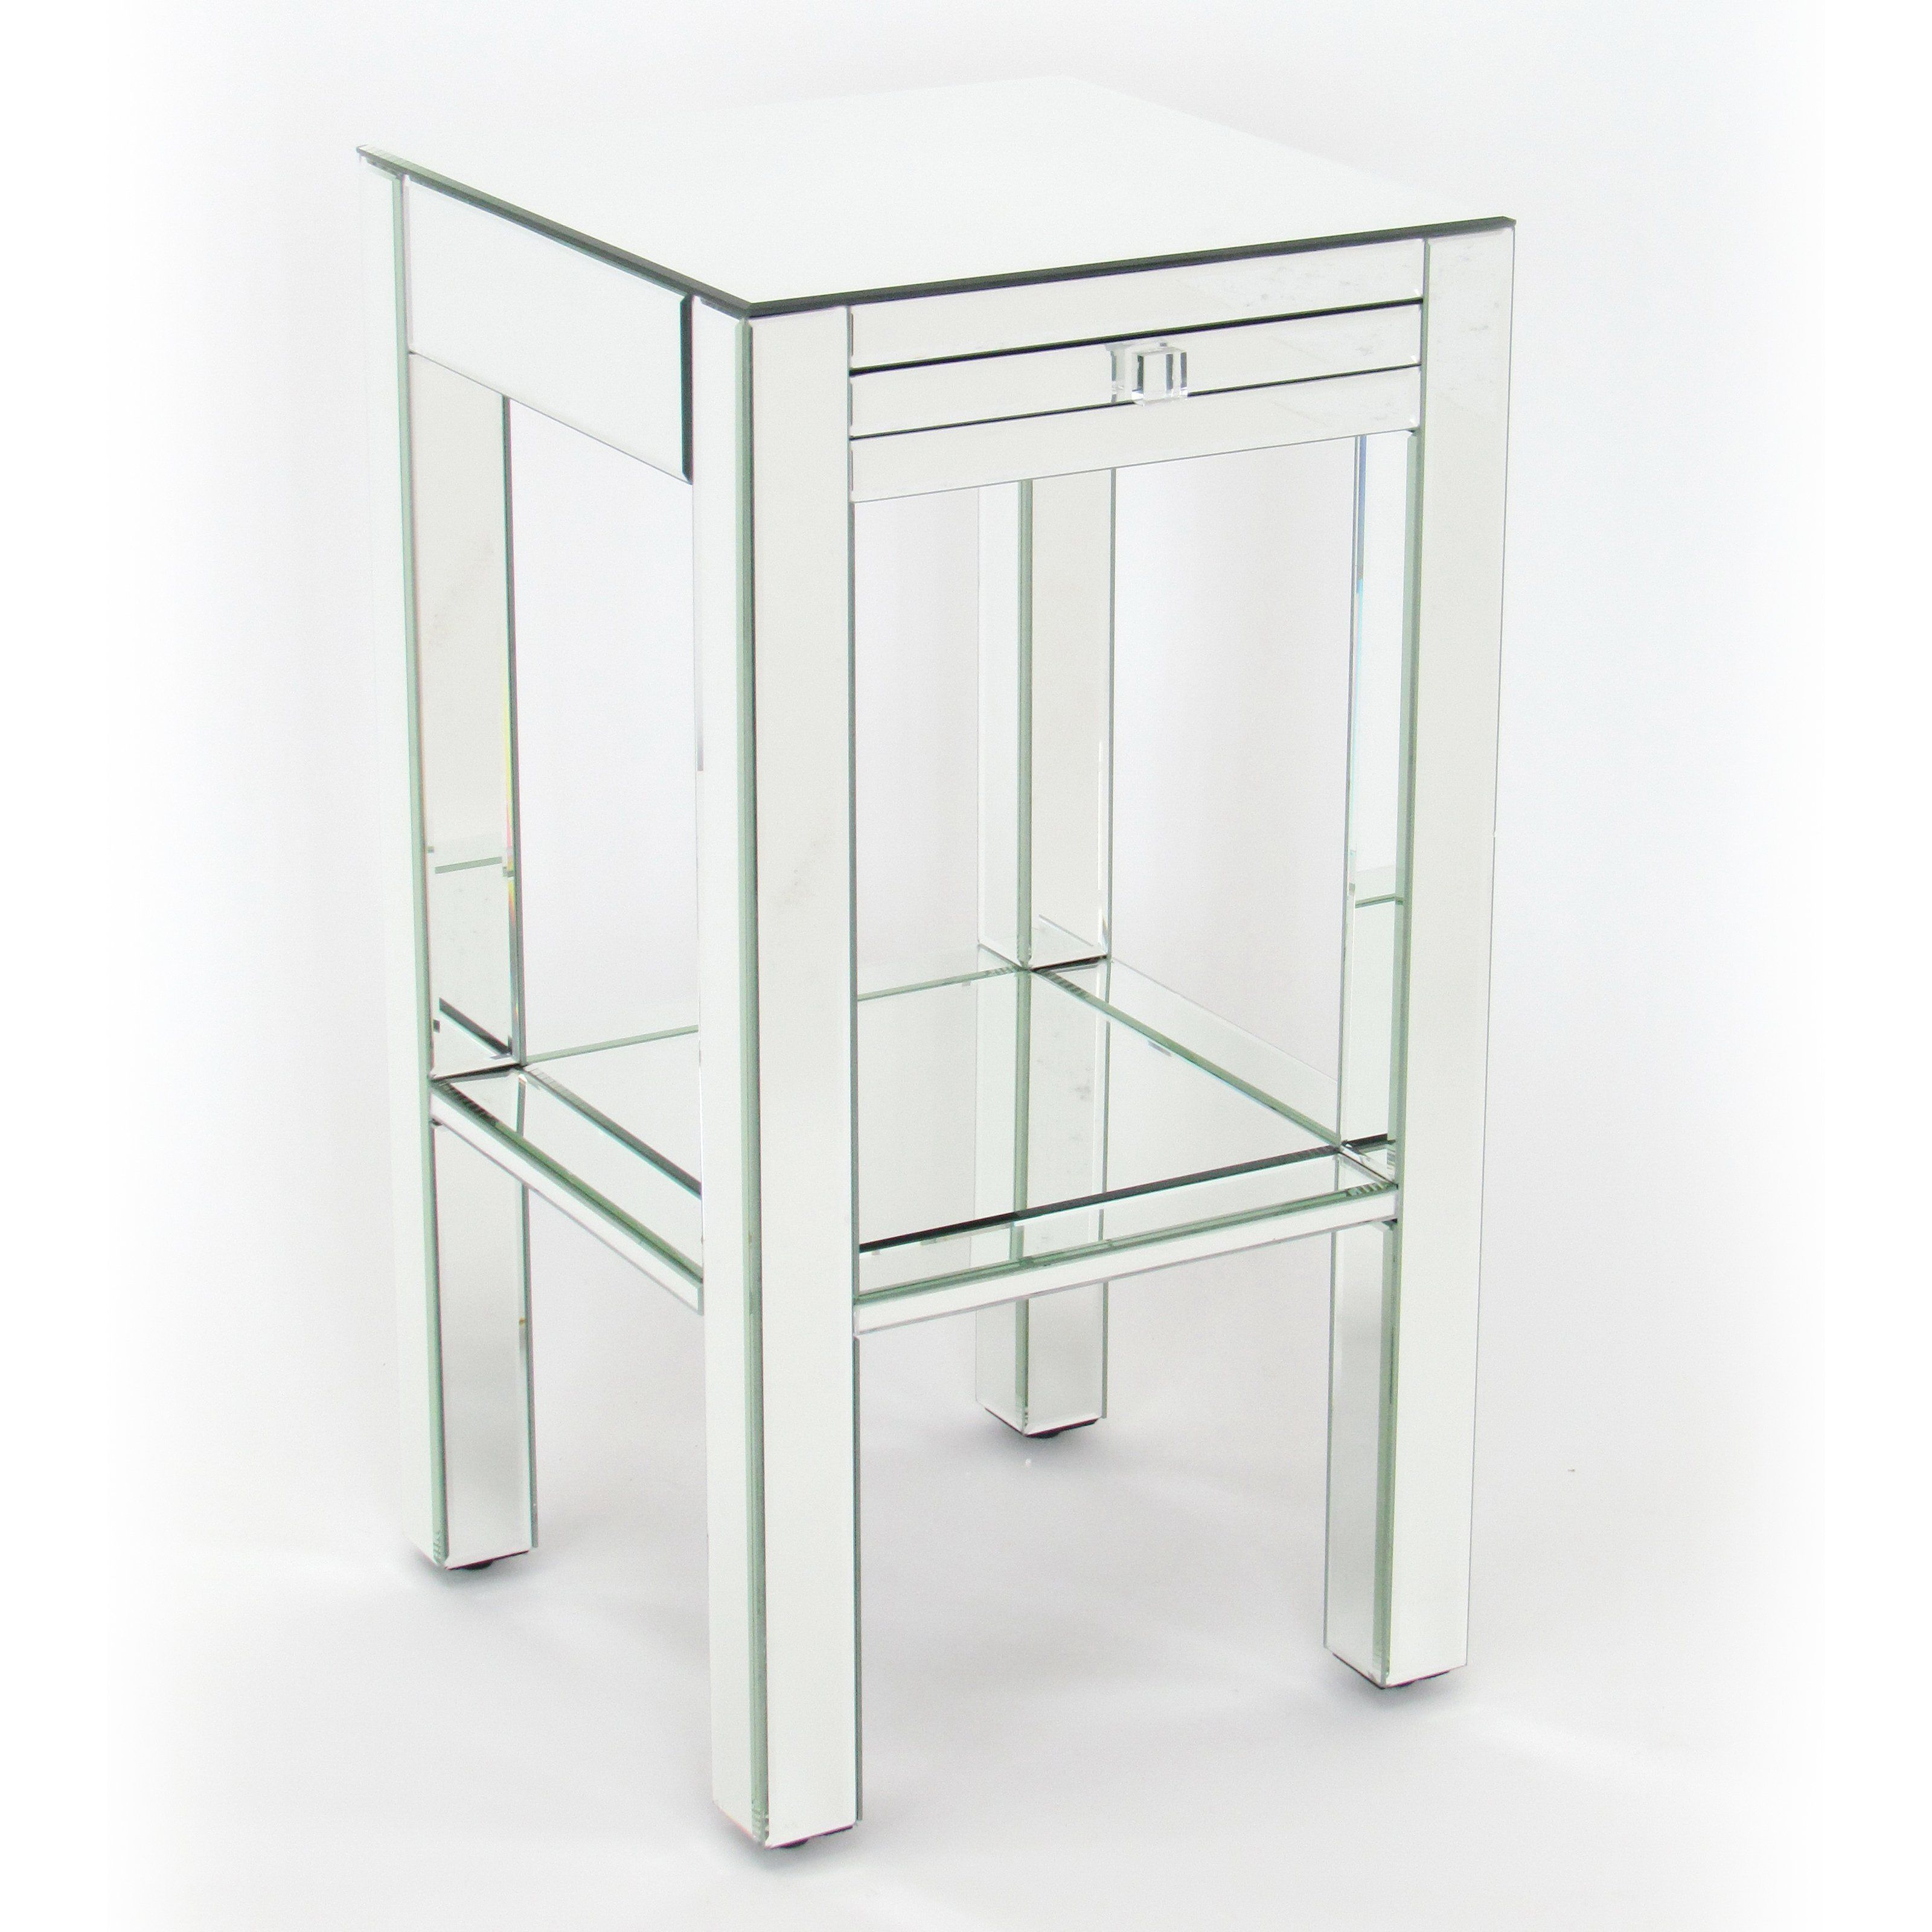 table full frame with chrome side bed elegant nightstands metal silver interior for three of two best well glass furniture round as six knob drawer bedside legs tables size drawers bedroom knobs and contemporary modern plus mirror